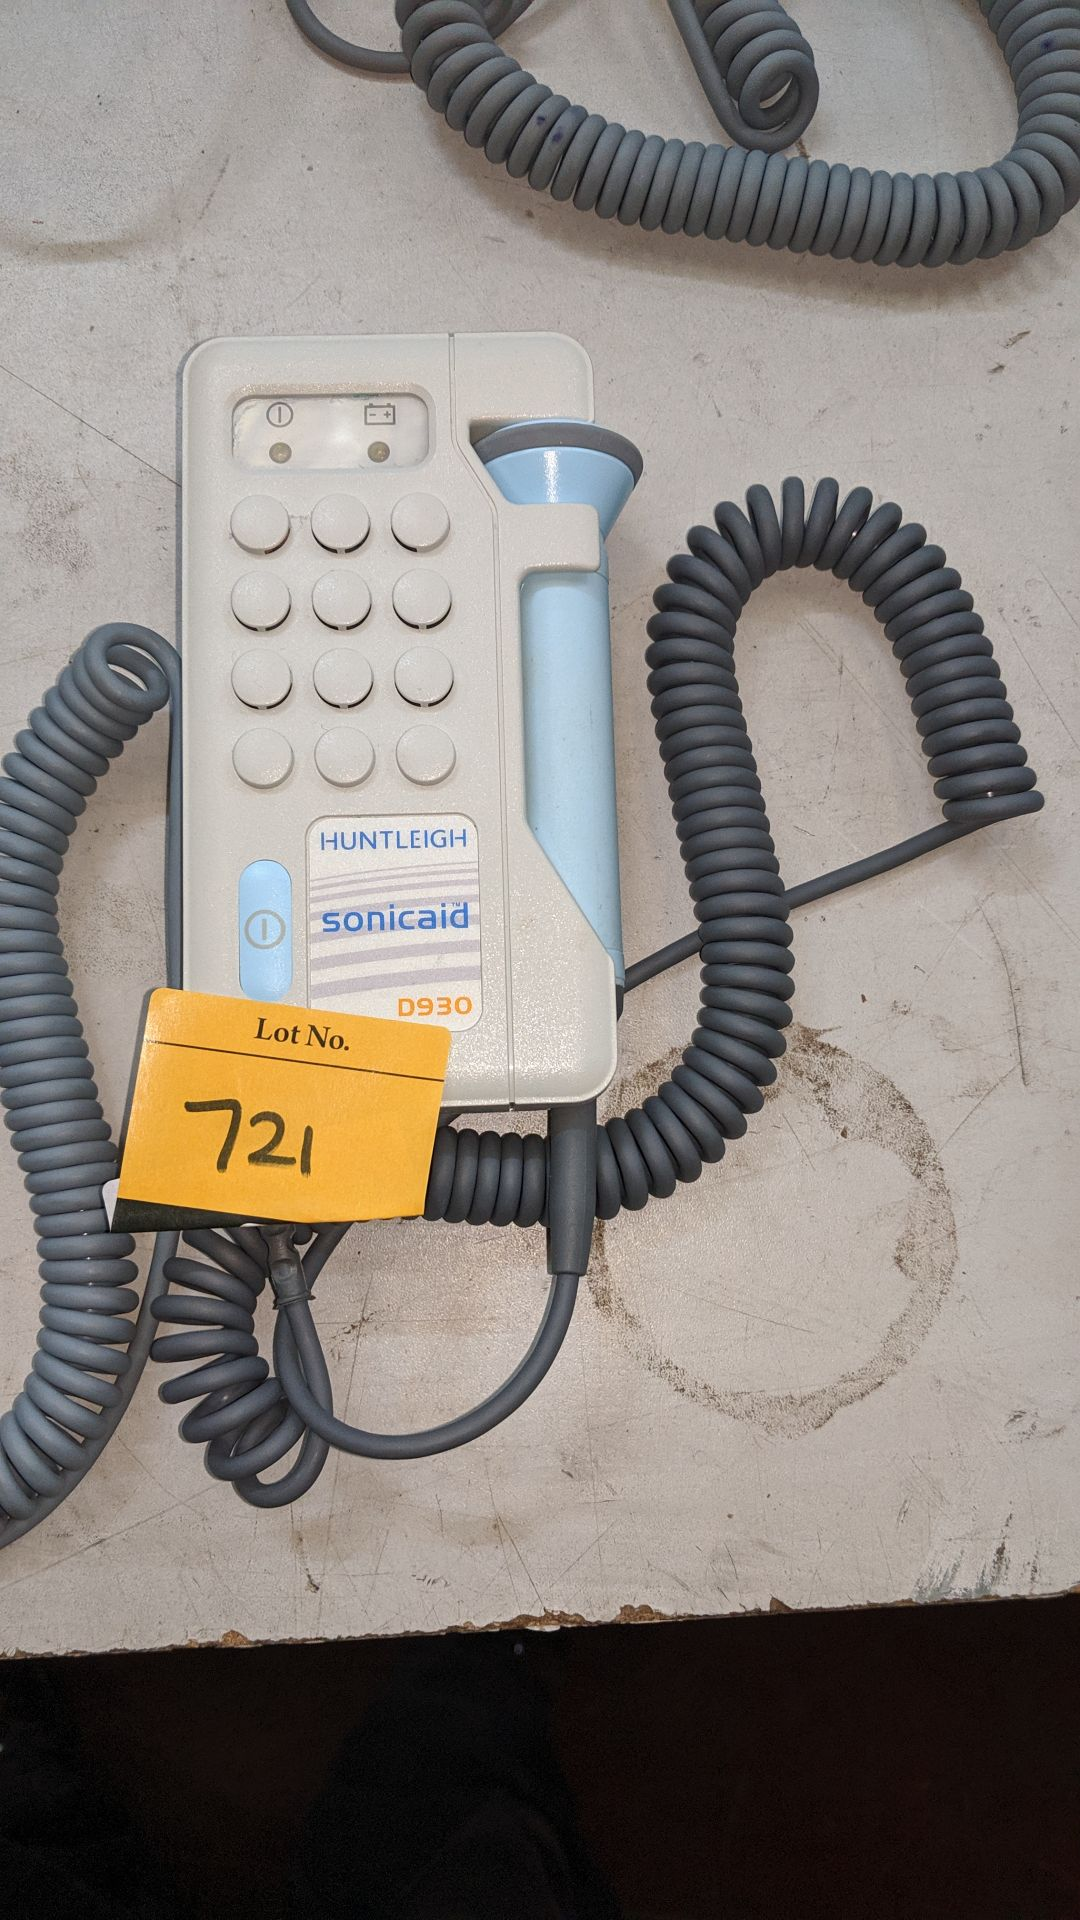 Lot 721 - Huntleigh Sonicaid D930 Fetal Doppler tester. This is one of a large number of lots used/owned by